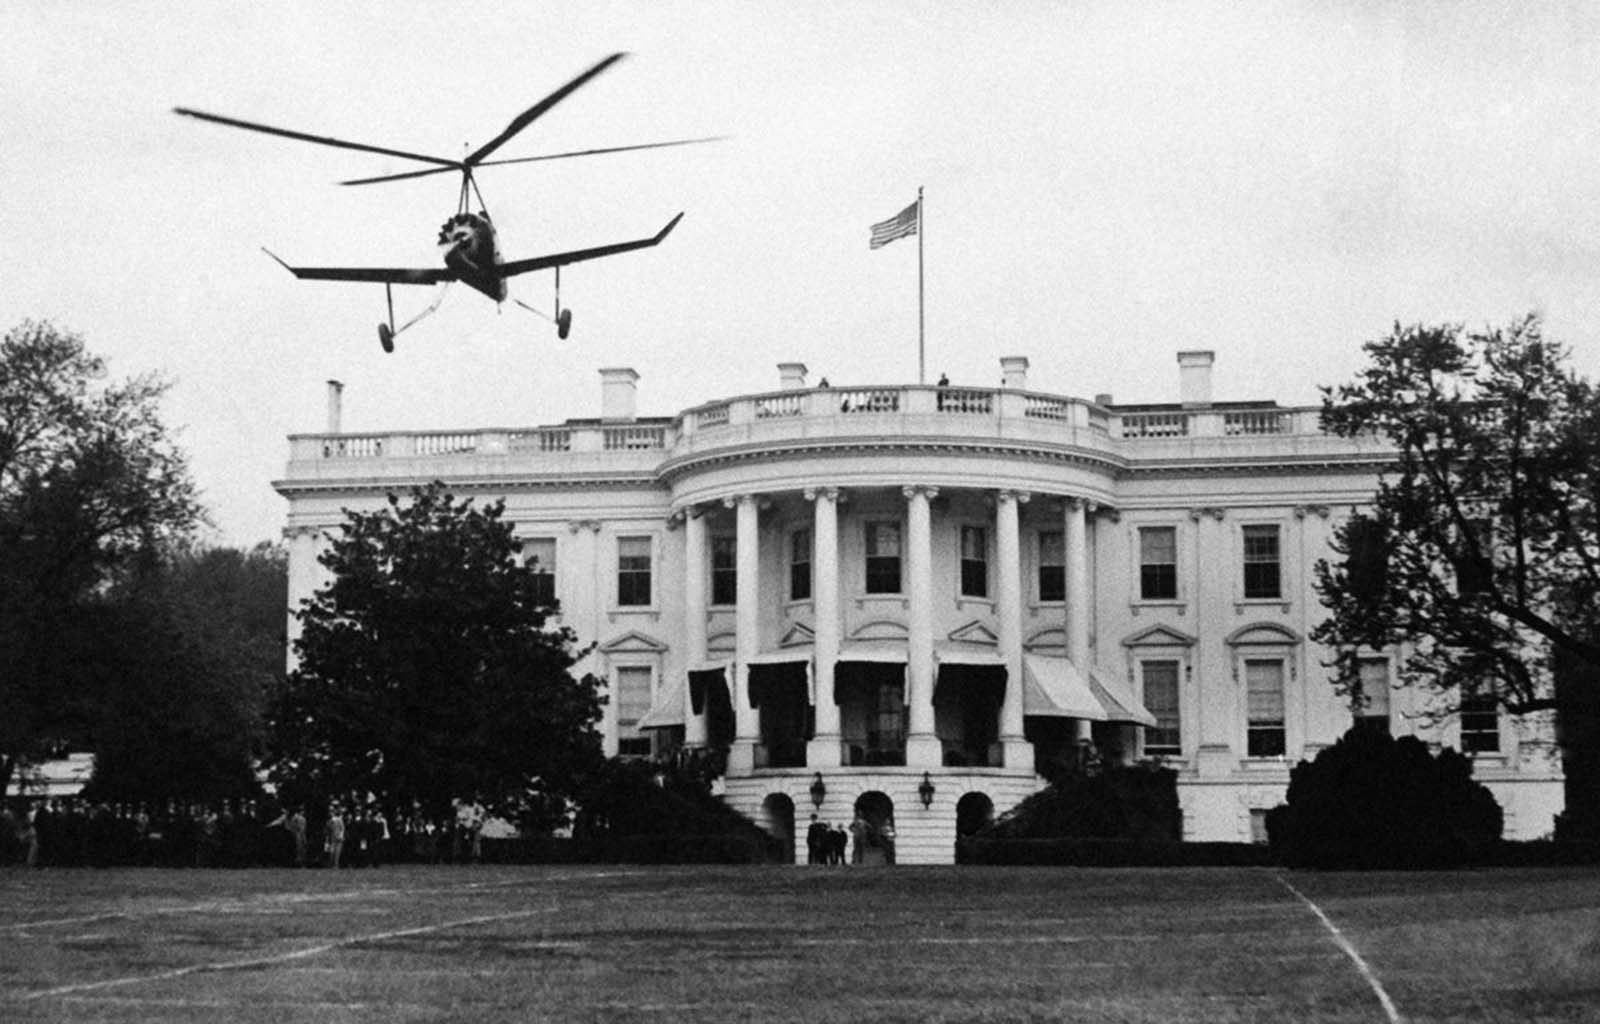 An autogyro in front of the White House. 1931.